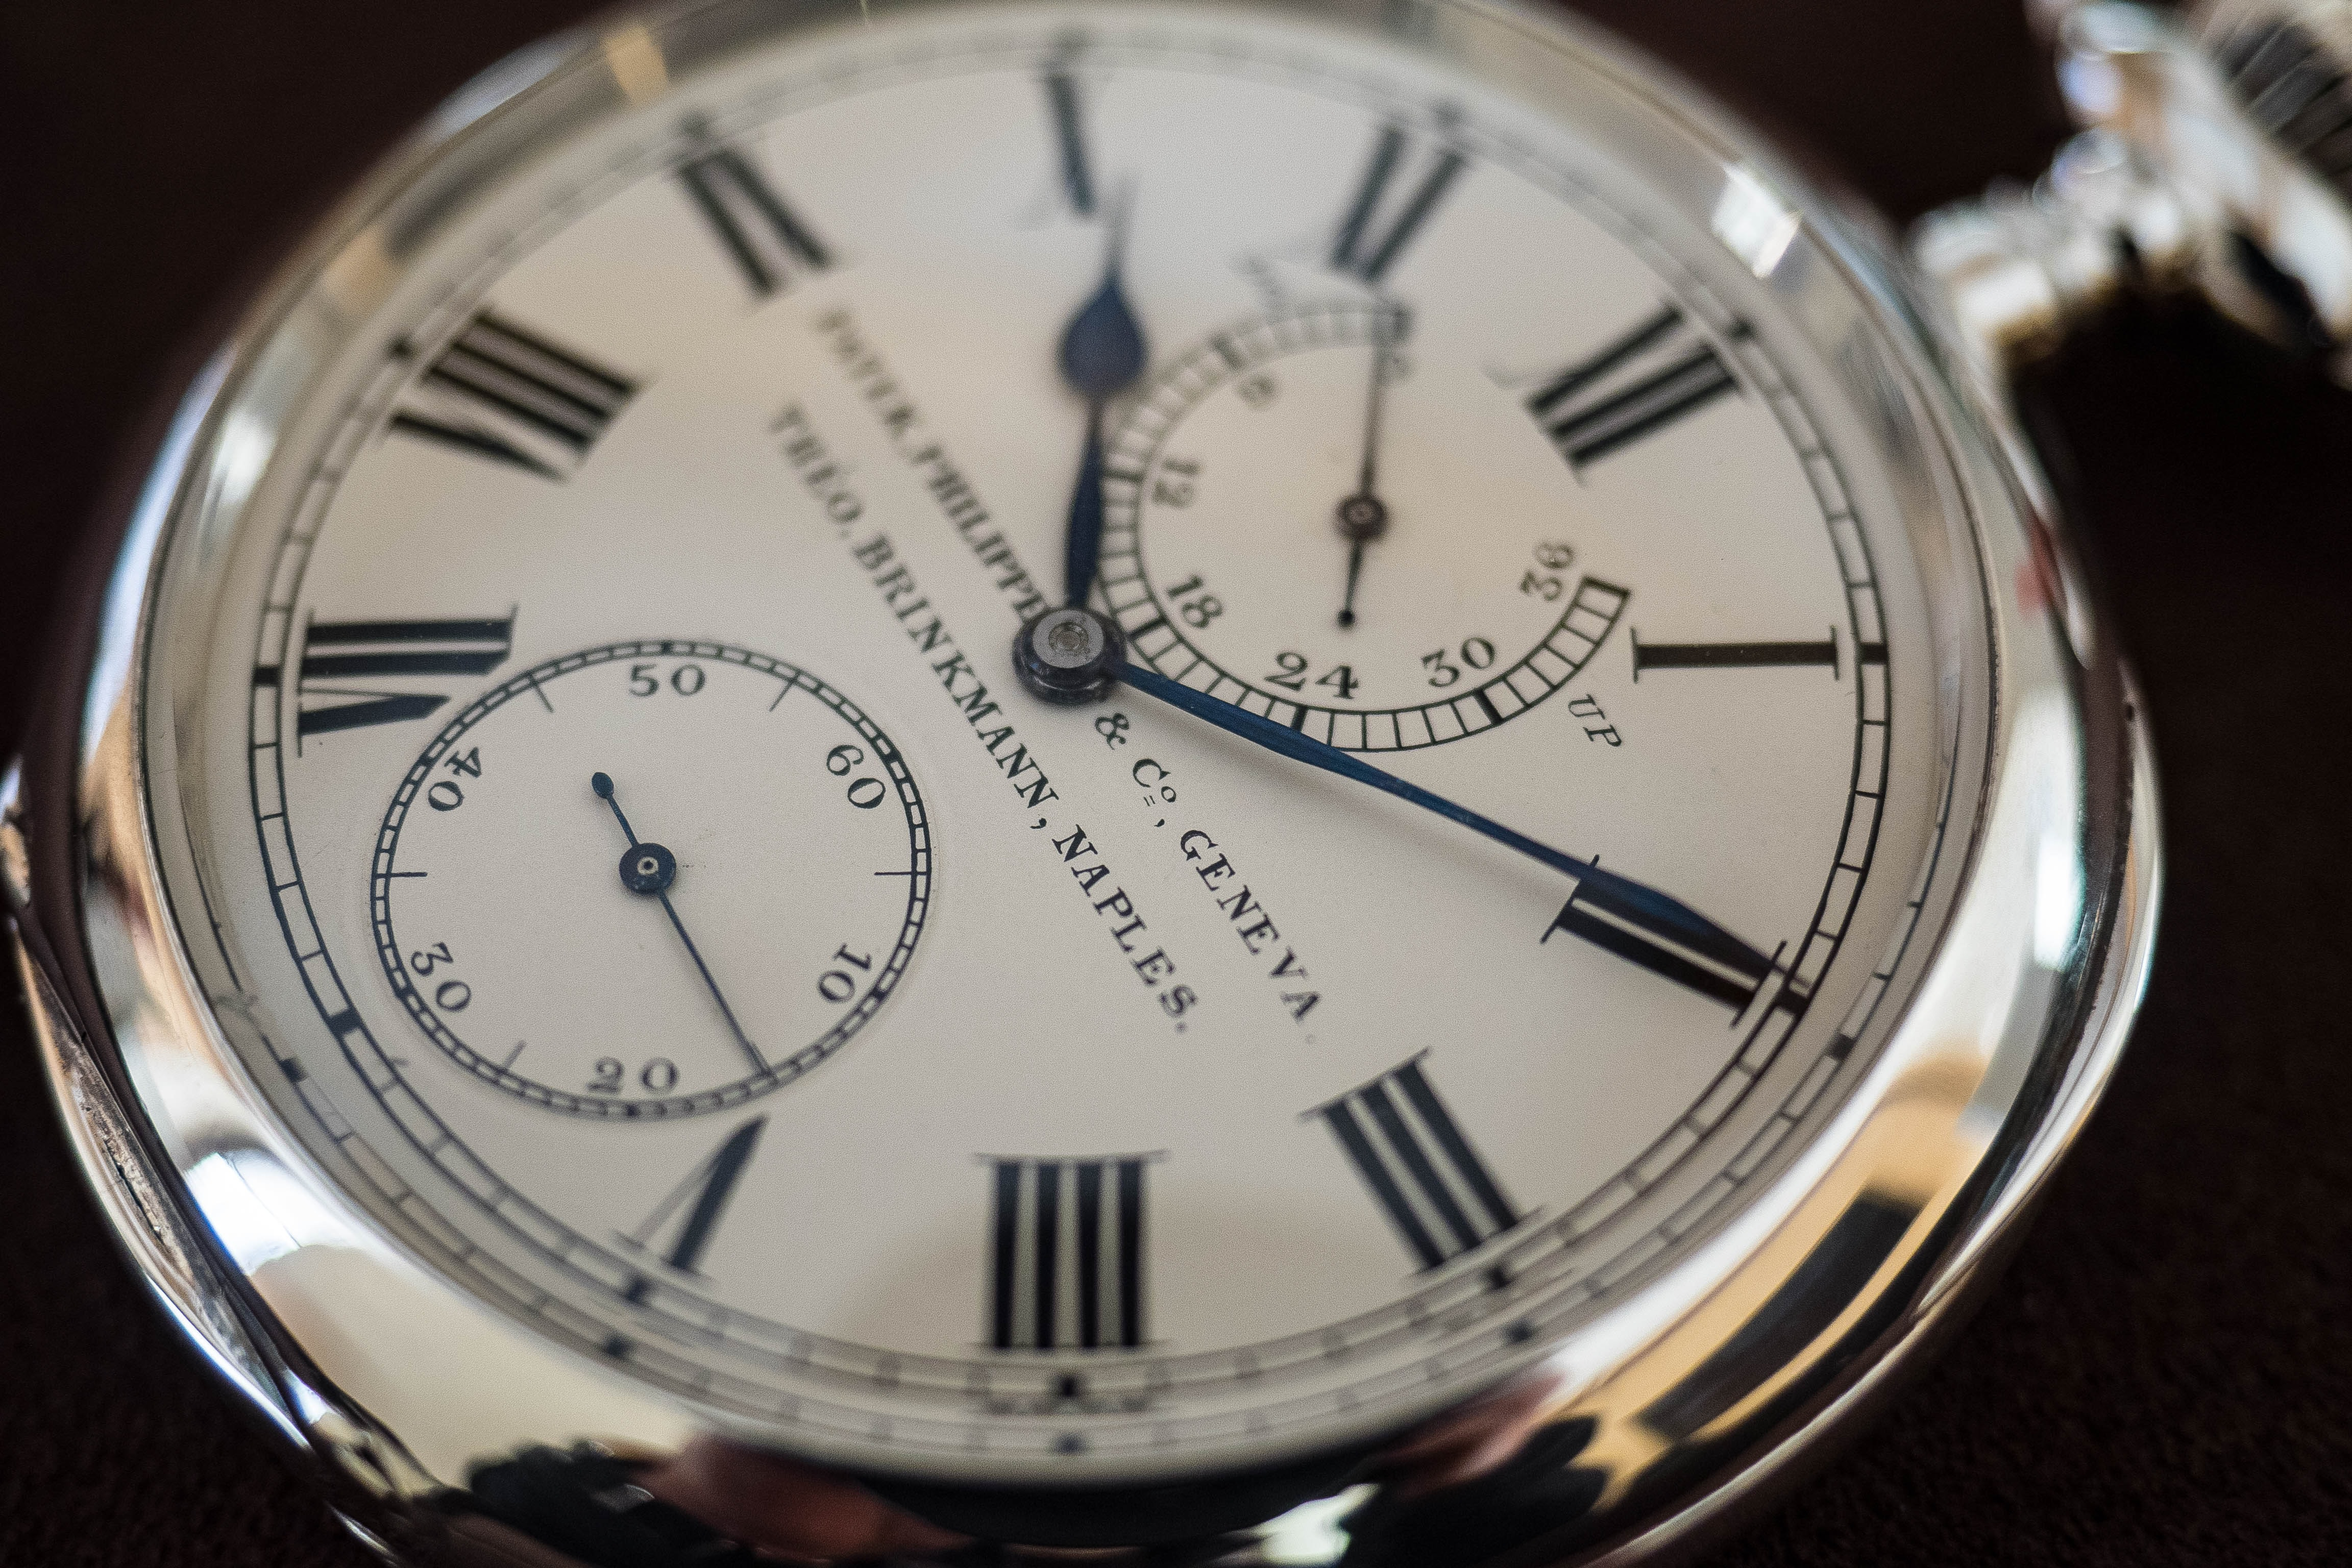 Weekend Reading: John Reardon Interviews Dr. Peter Friess, The Curator Of The Patek Philippe Museum (The Most Important Collection Of Timepieces On Earth) Weekend Reading: John Reardon Interviews Dr. Peter Friess, The Curator Of The Patek Philippe Museum (The Most Important Collection Of Timepieces On Earth) d3a938270d15bc3708446181b0d2da1e ixlib rails 1